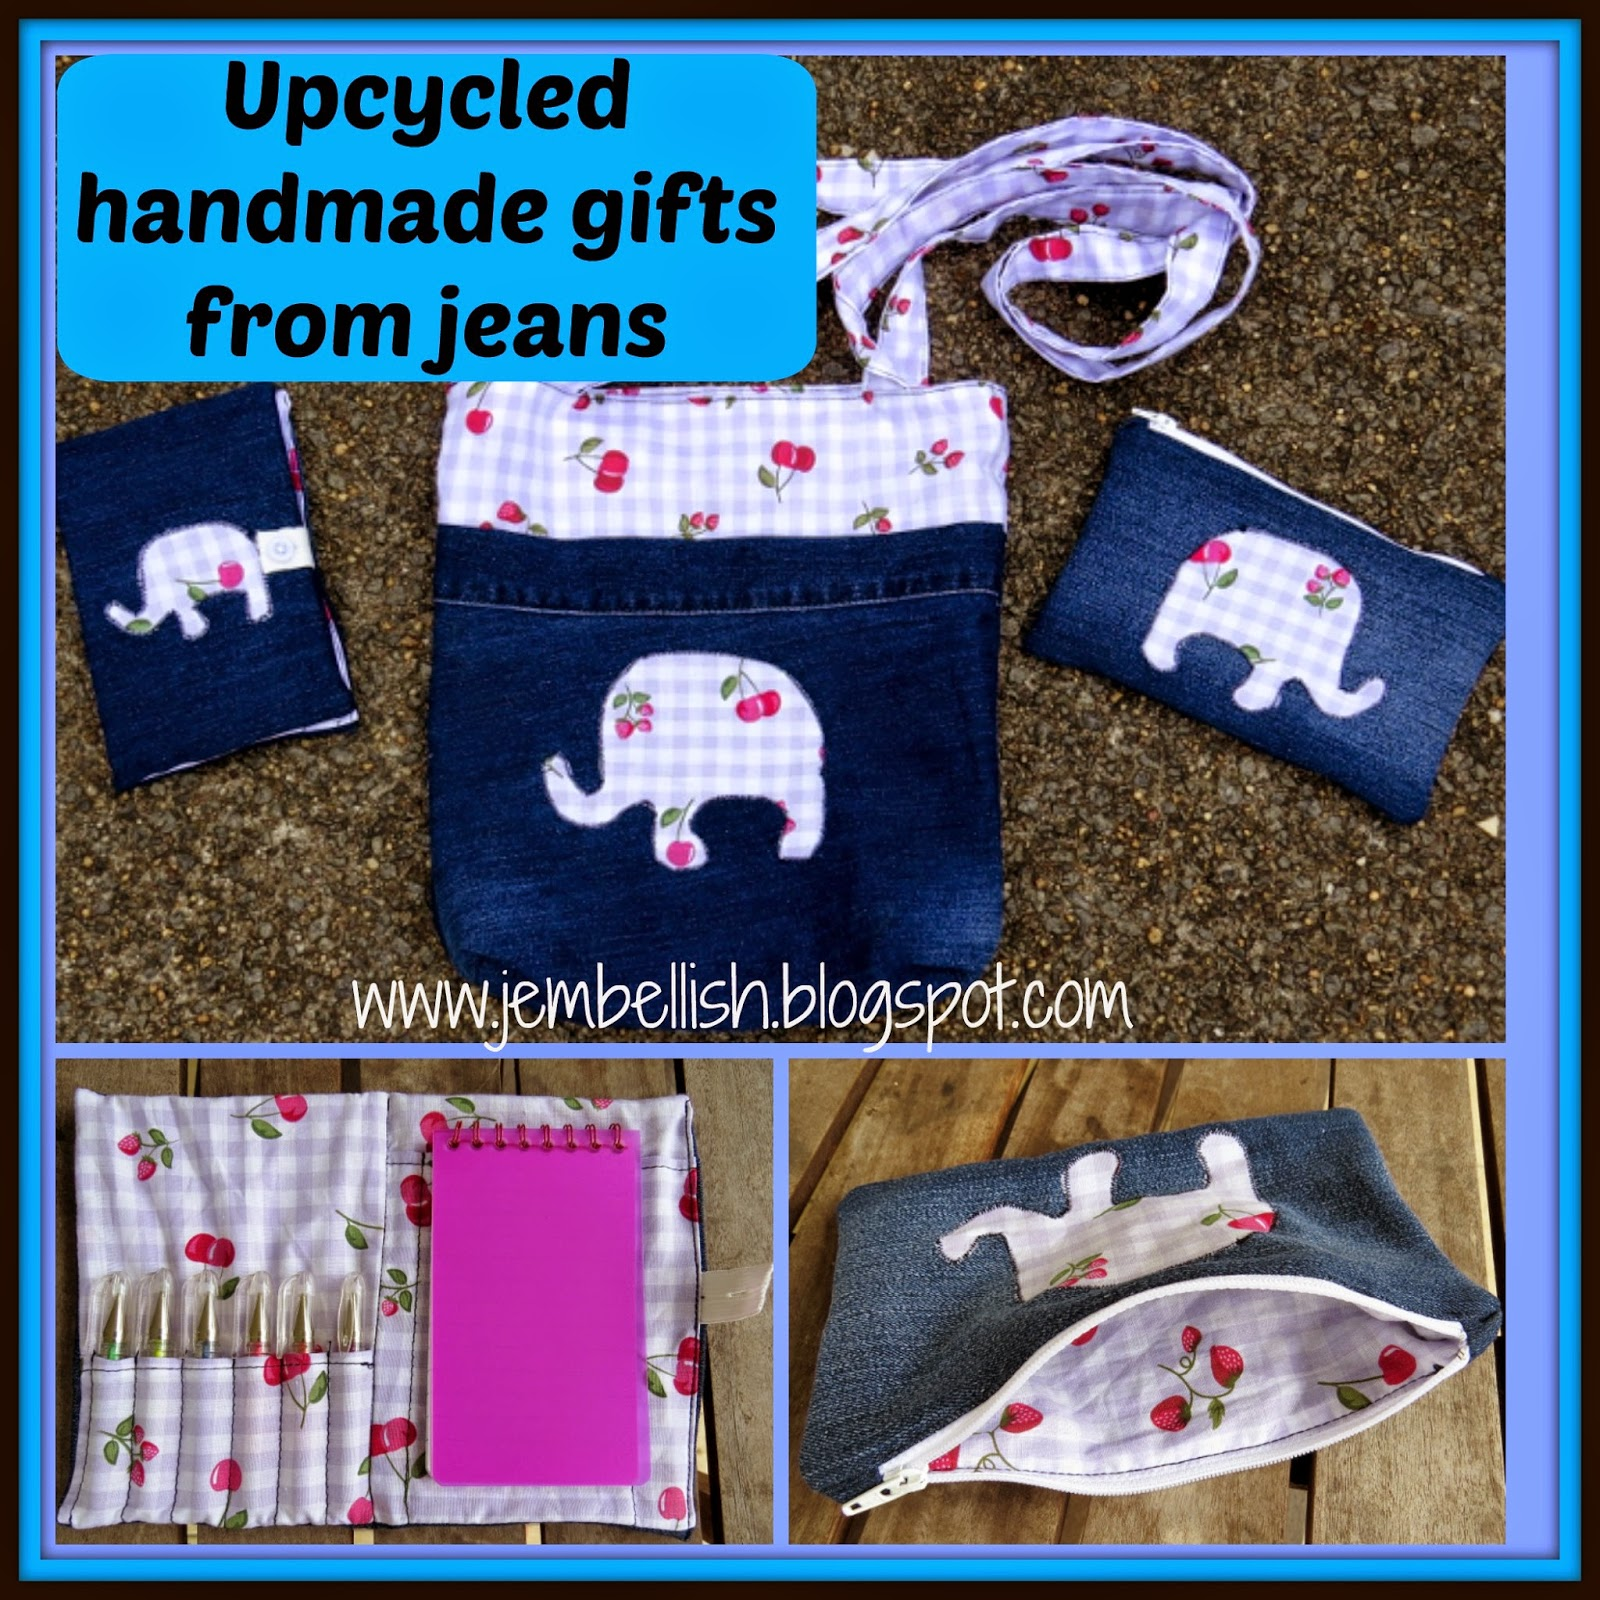 Creating My Way To Success Handmade Birthday Gifts From Upcycled Jeans